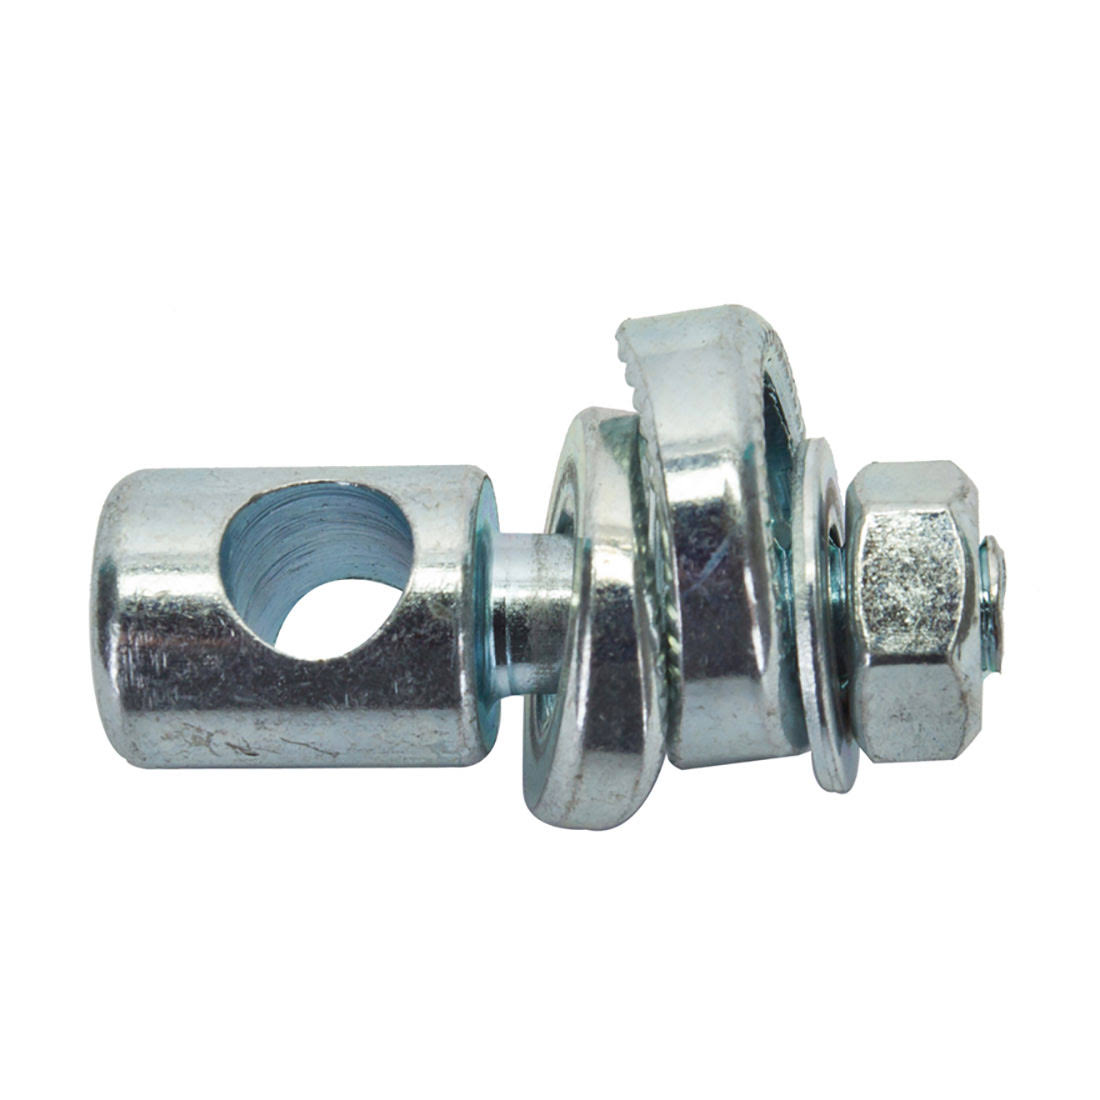 Sunlite Cantilever Shoe Eye Bike Bolt